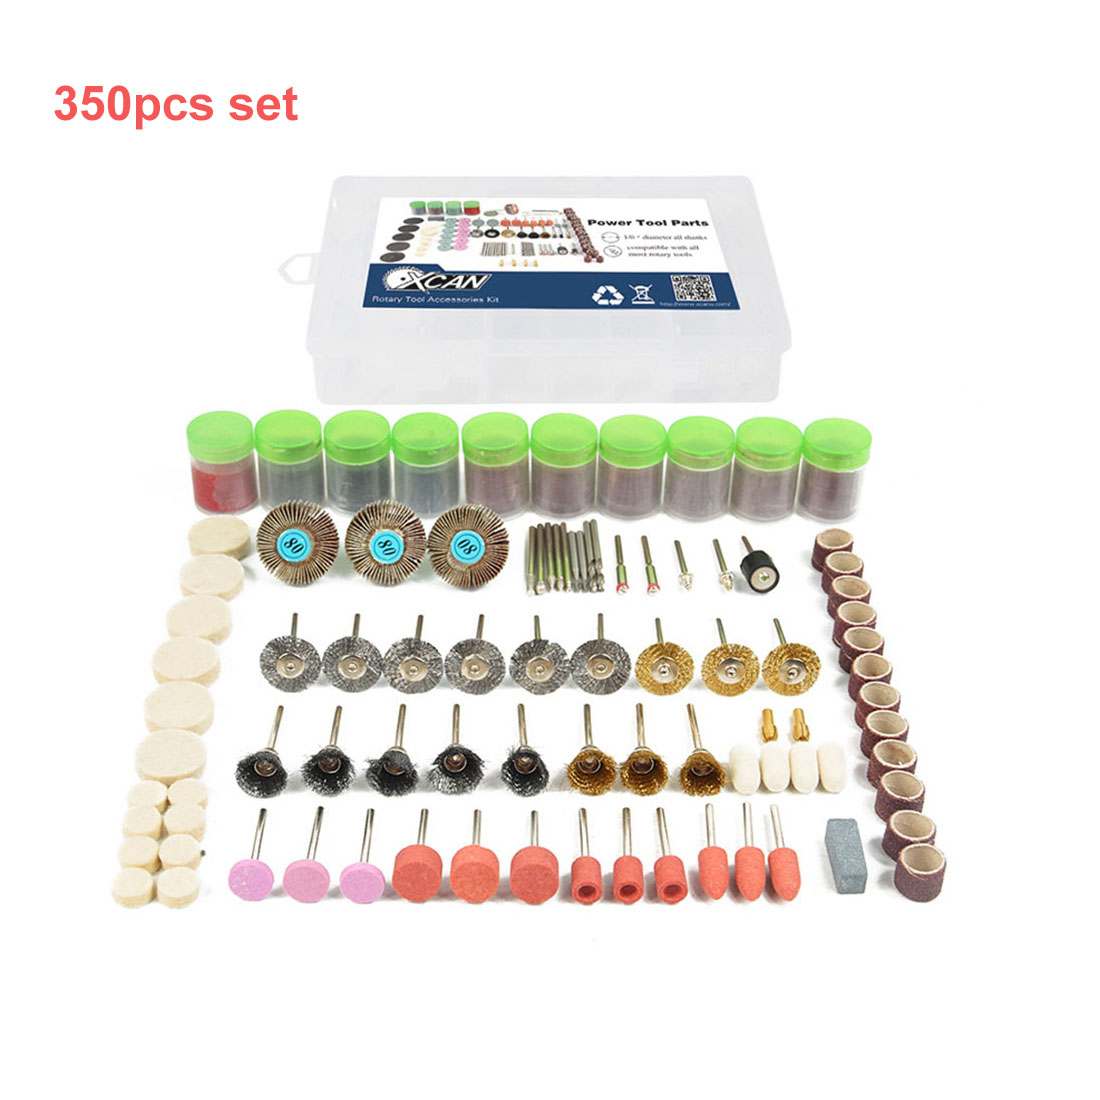 350pcs/lot 340pcs/lot Carving Rotary Tool Drill Bit Set Mini Drill Accessories Engraving Grinding Polishing Abrasive Tools 150pcs rotary tool accessories mini drill bit set